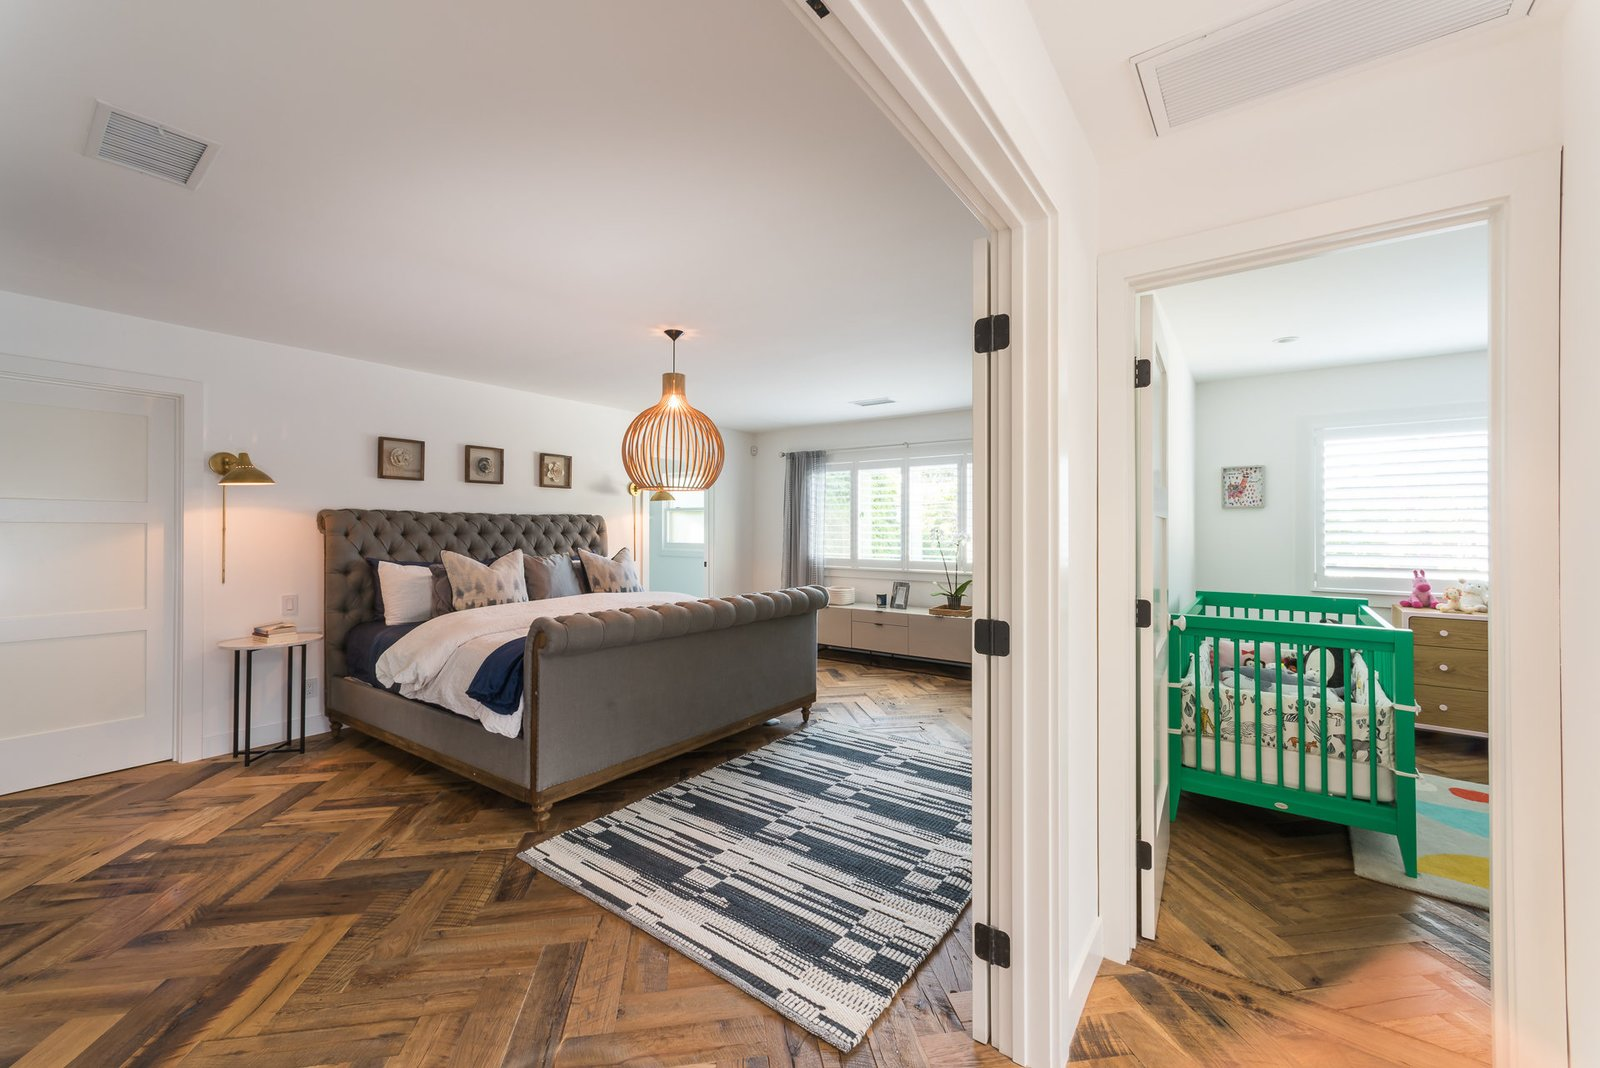 Tagged: Bedroom, Medium Hardwood Floor, and Bed. Mid-Century Meets Boho Chic by Zillow